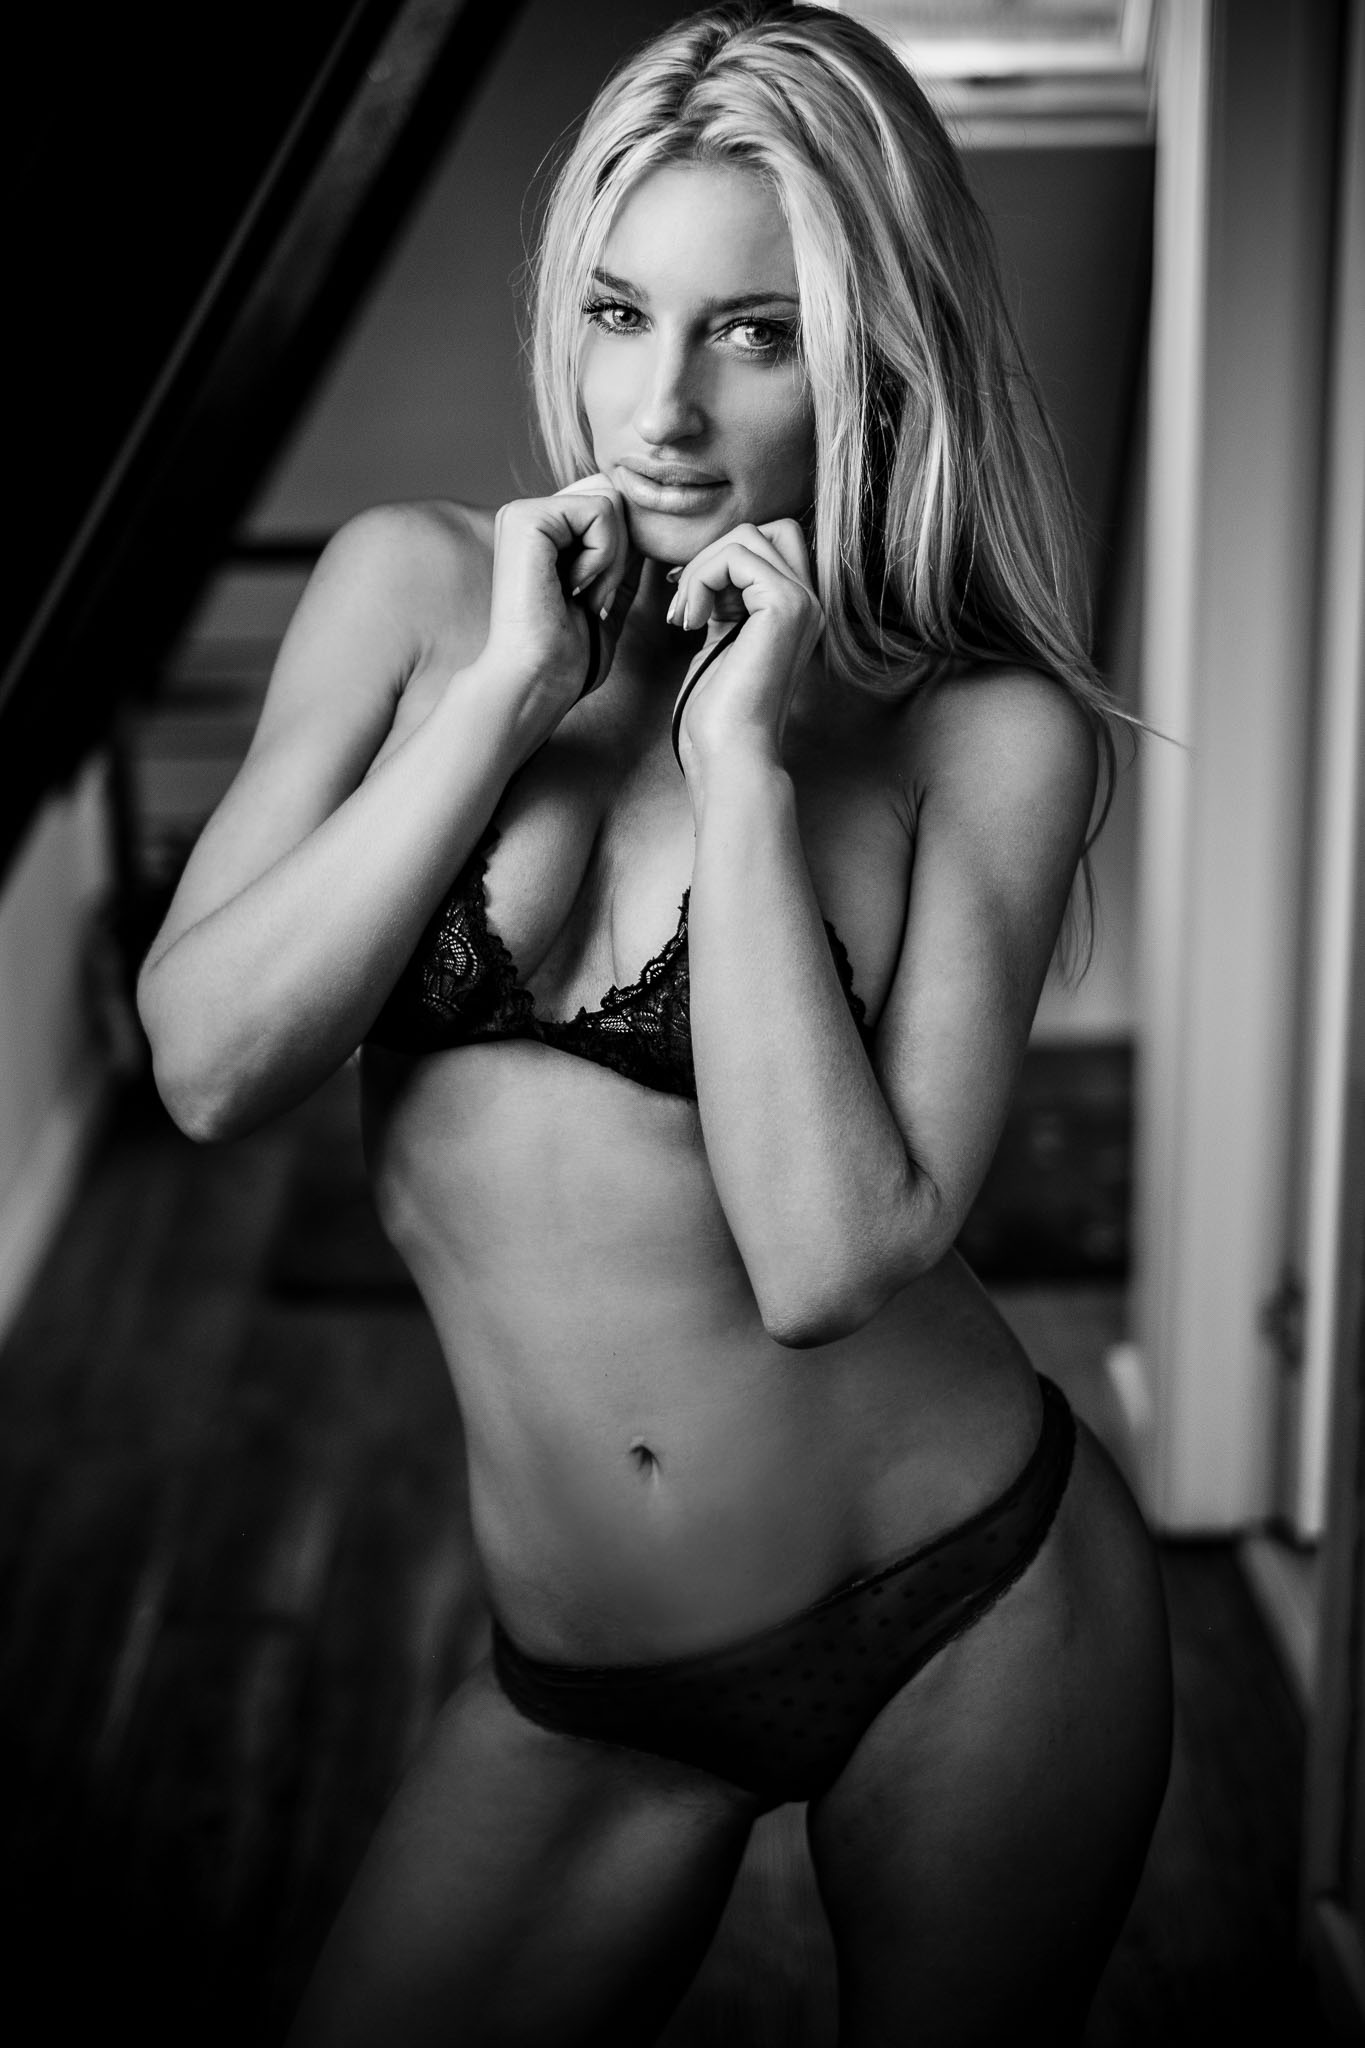 boudoir photography natural light hands black and white